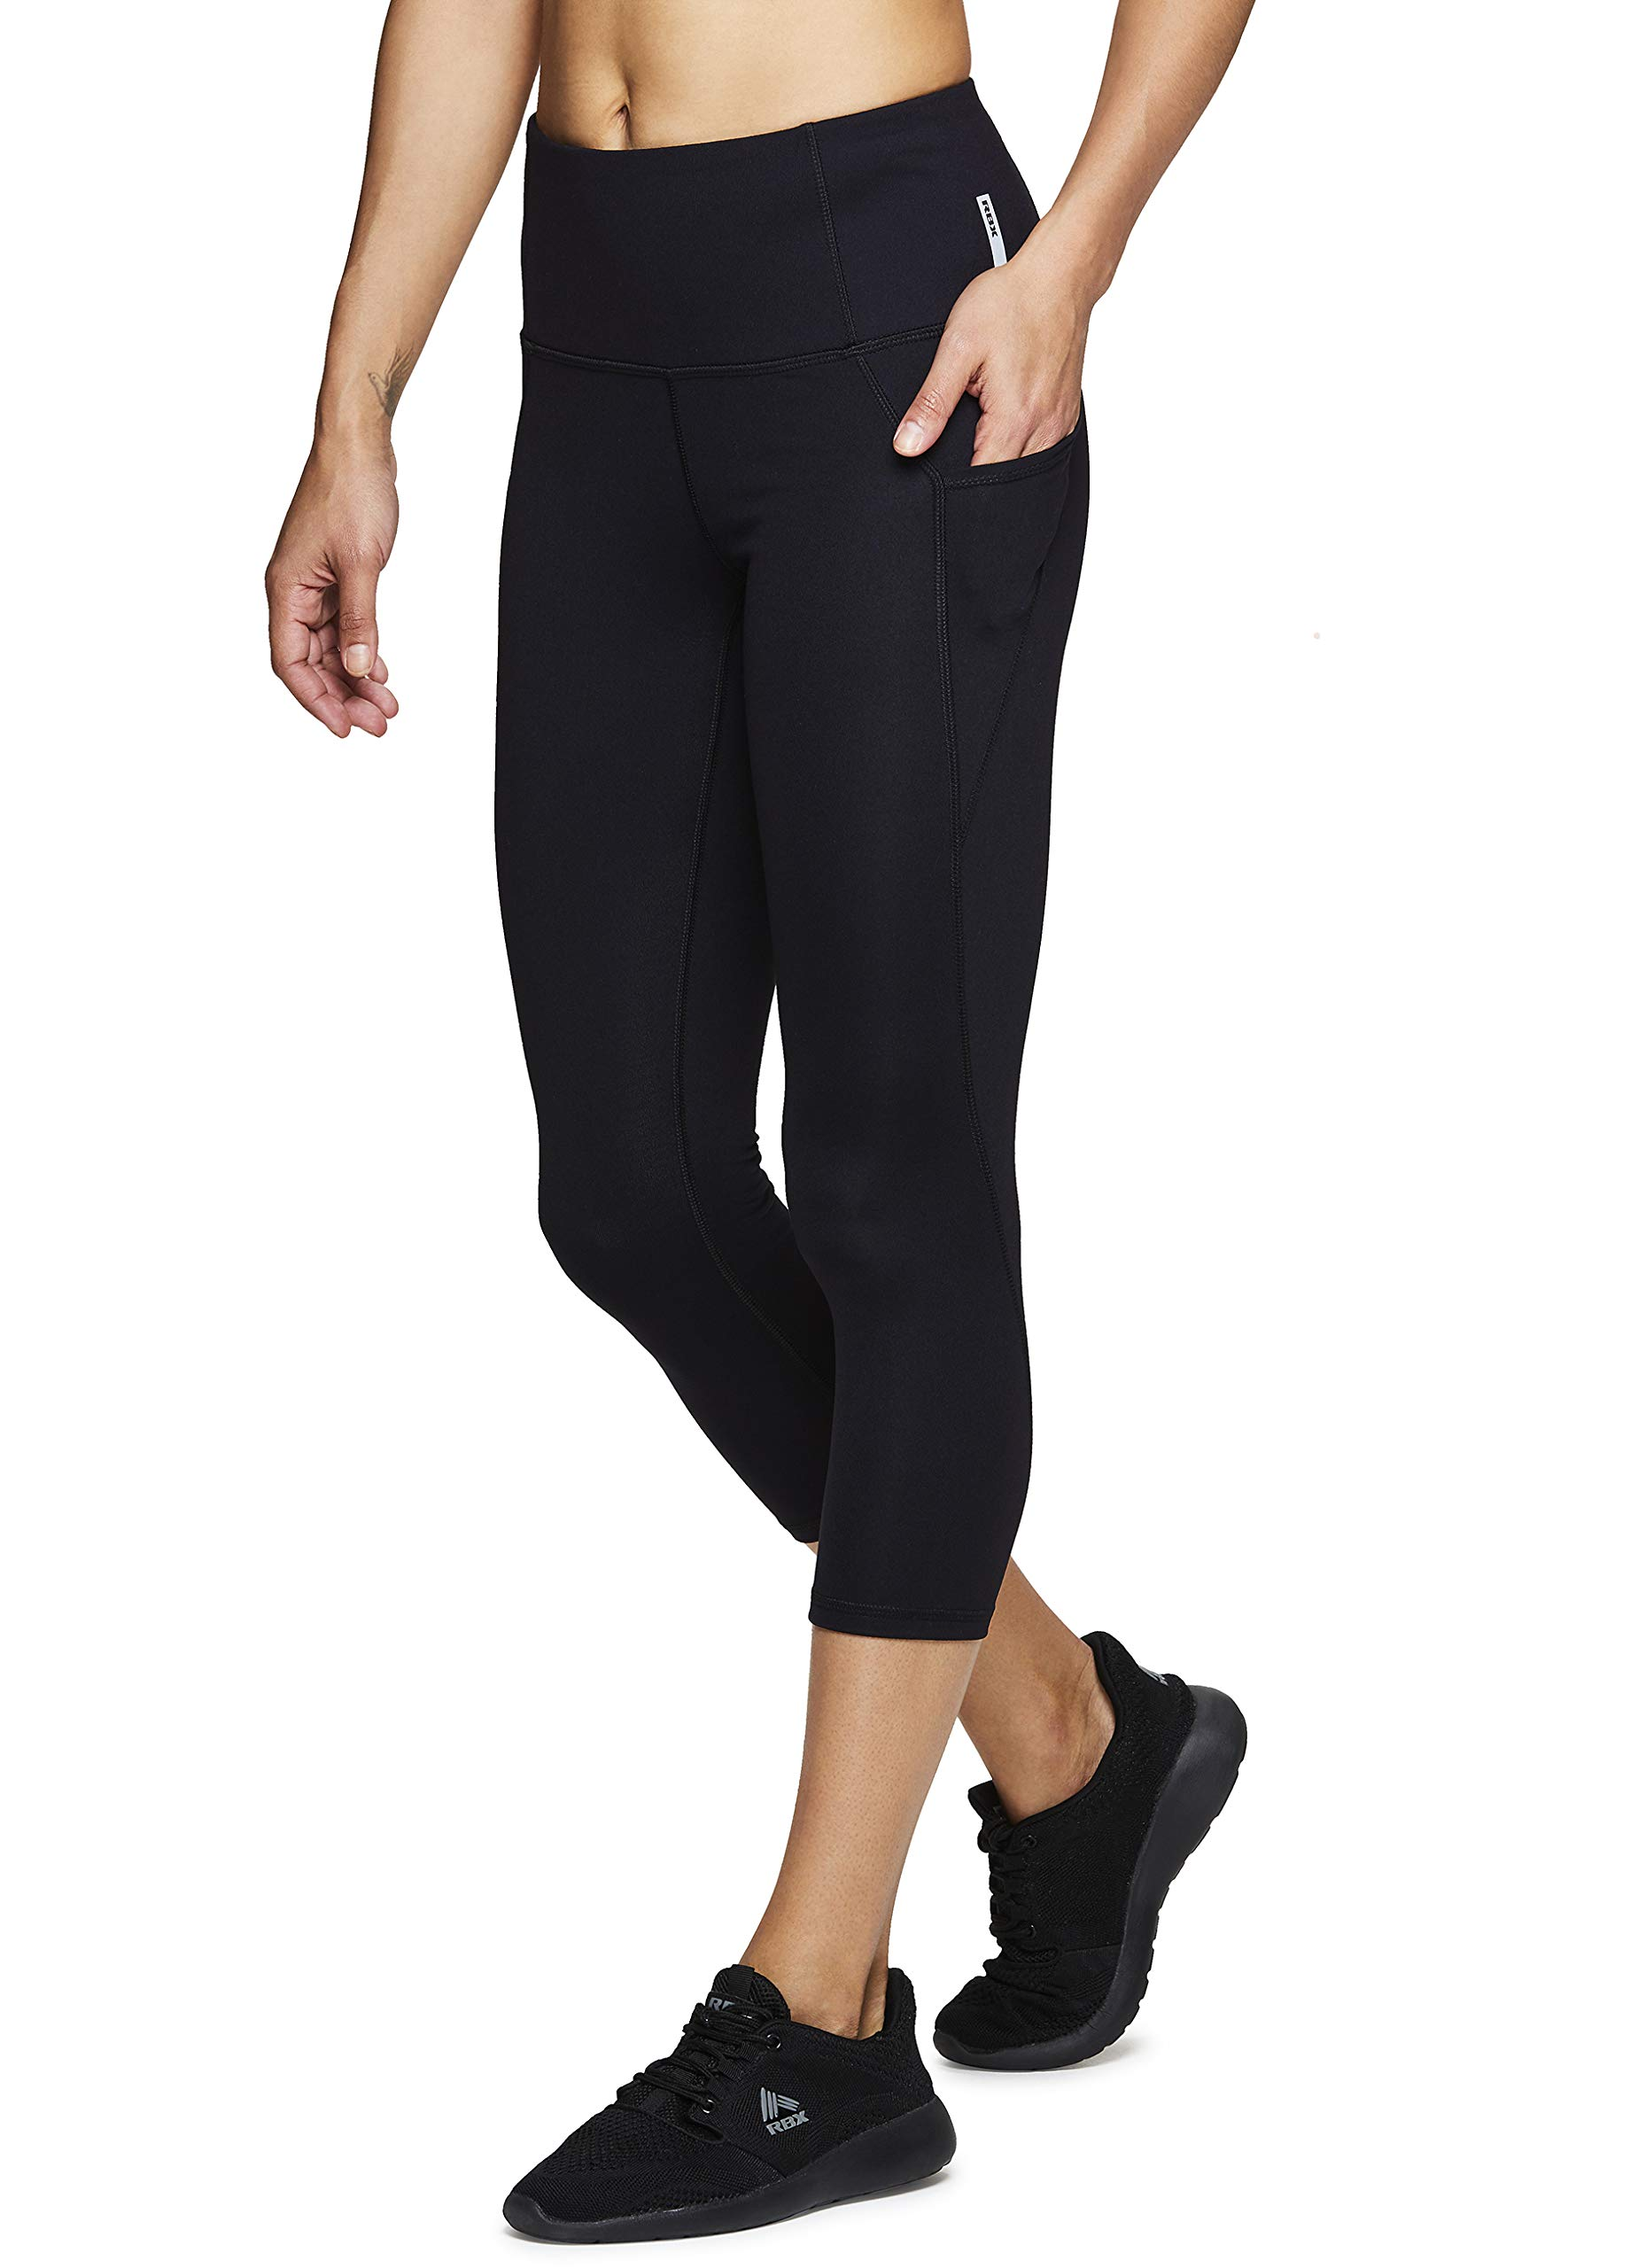 RBX Active Women's Power Hold High Waist Capri Leggings w/Pockets S19 Black M by RBX